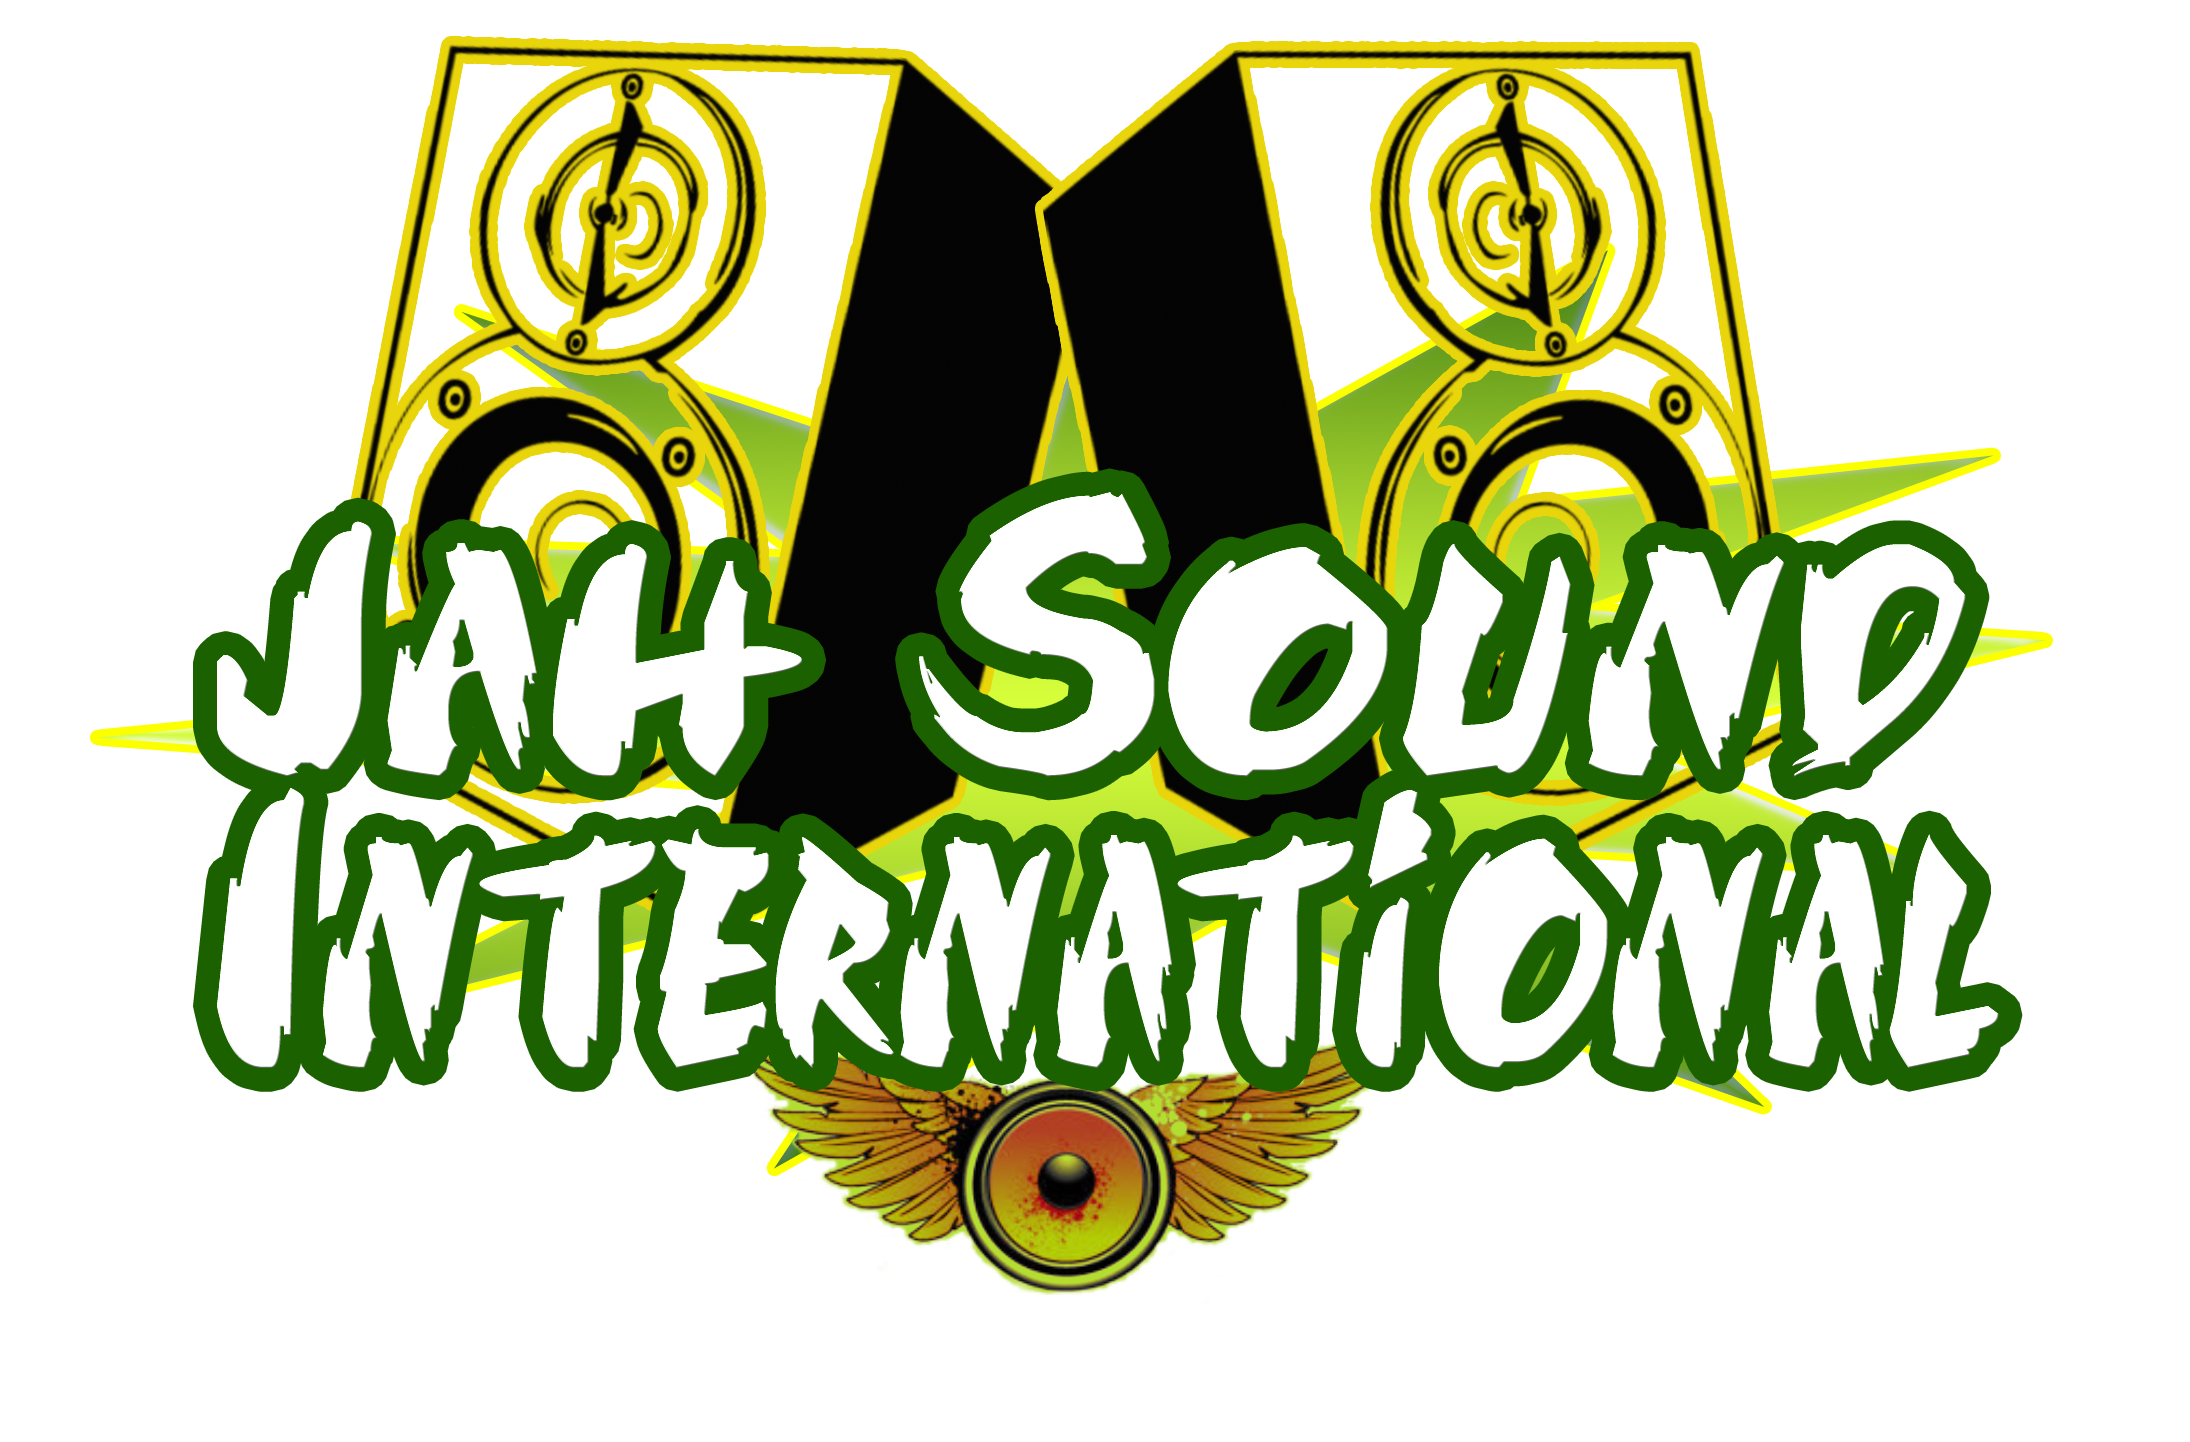 Welcome to the Official website of Jah sound international